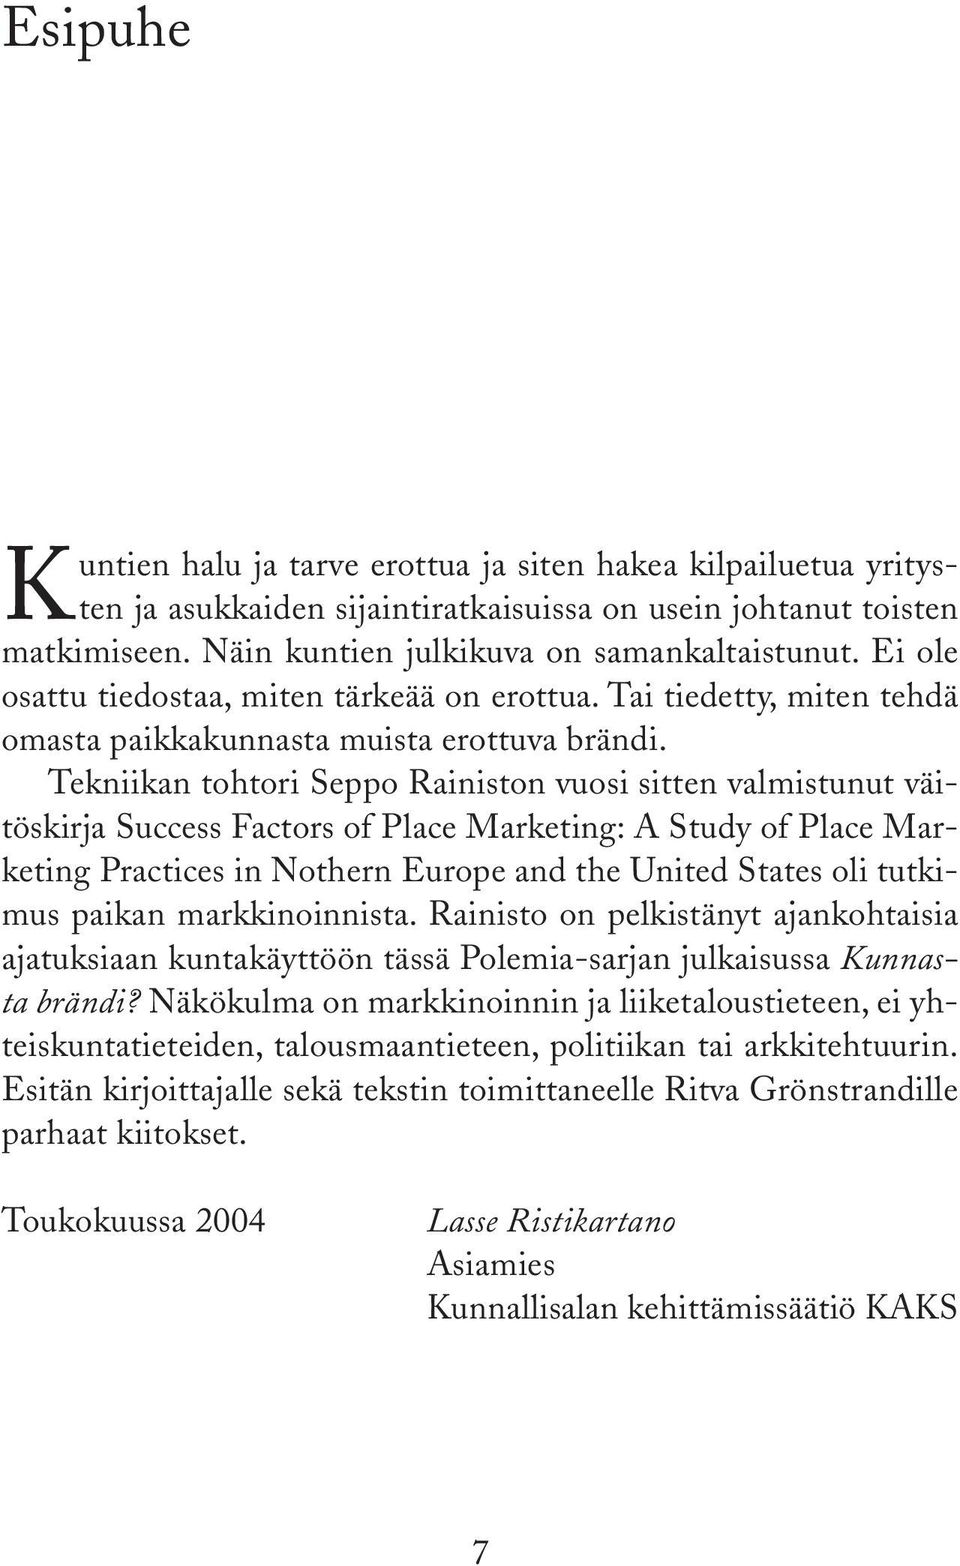 Tekniikan tohtori Seppo Rainiston vuosi sitten valmistunut väitöskirja Success Factors of Place Marketing: A Study of Place Marketing Practices in Nothern Europe and the United States oli tutkimus